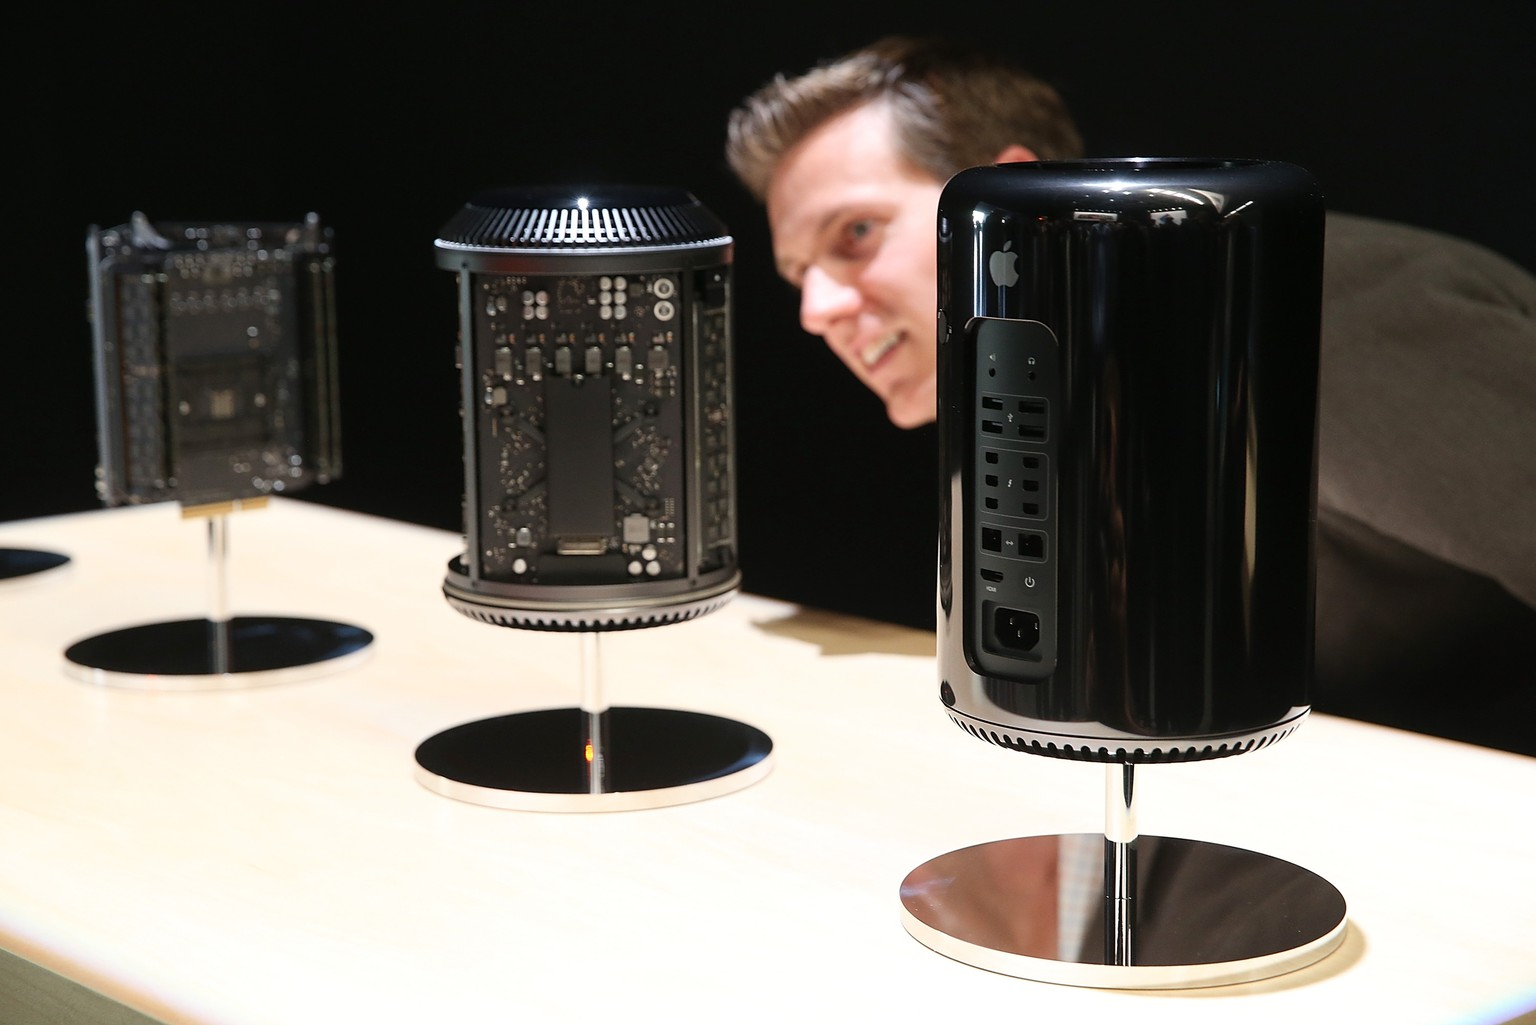 SAN FRANCISCO, CA - OCTOBER 22:  An attendee looks at the new Mac Pro during an Apple announcement at the Yerba Buena Center for the Arts on October 22, 2013 in San Francisco, California. The tech giant announced its new iPad Air, a new iPad mini with Retina display, OS X Mavericks and highlighted its Mac Pro.  (Photo by Justin Sullivan/Getty Images)